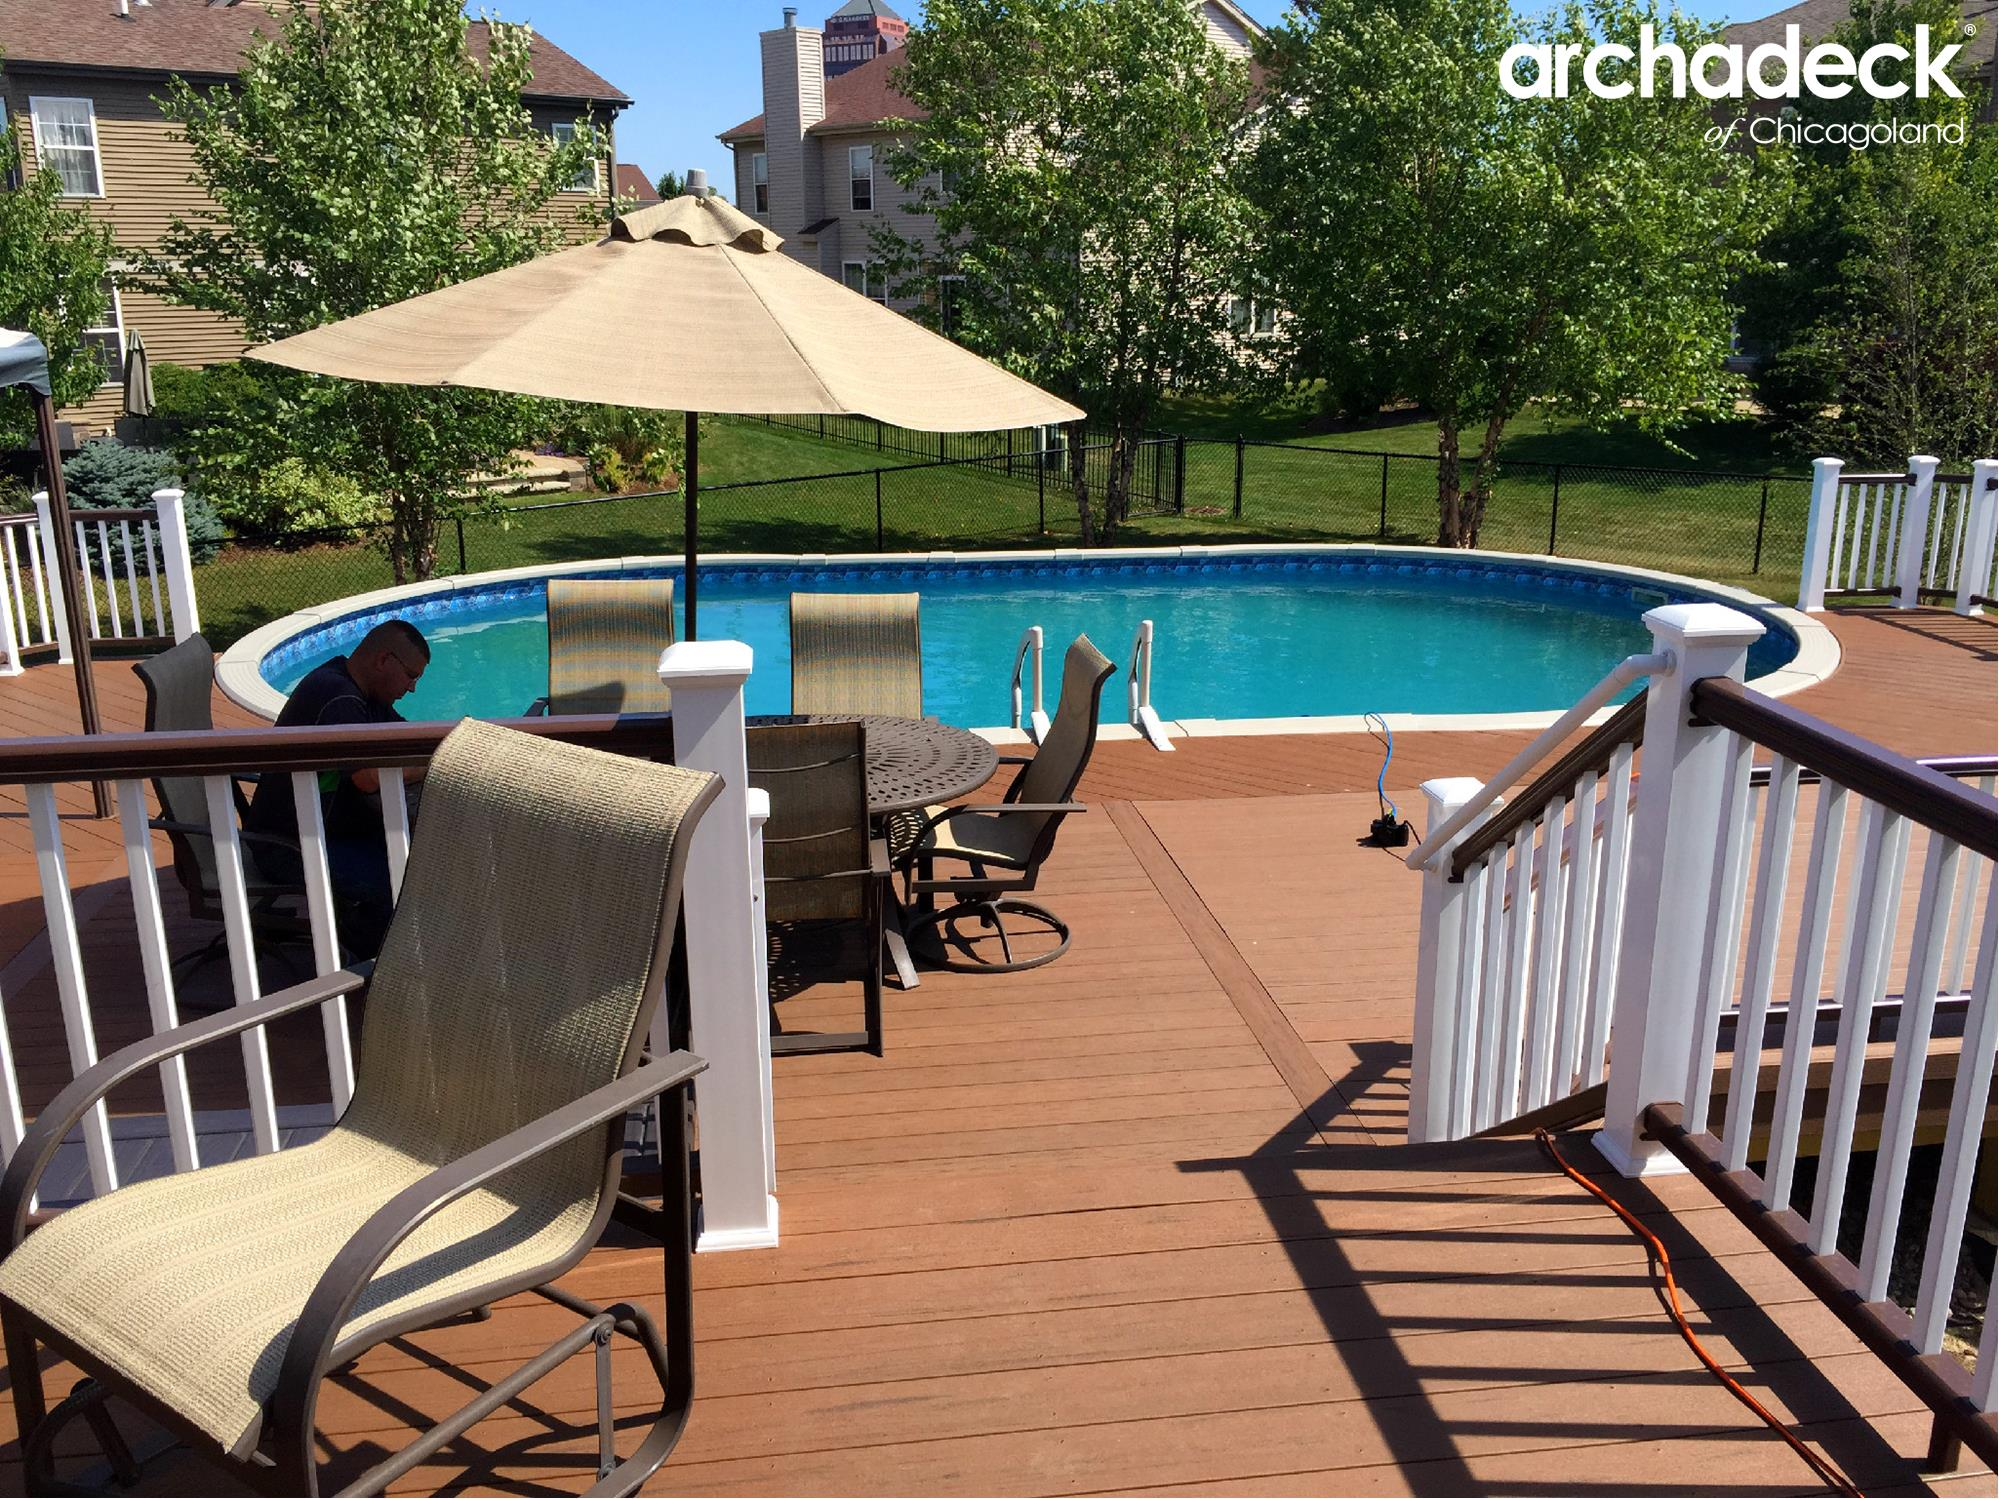 Pool Deck Ideas for Chicagoland Homeowners | Archadeck ... on Pool Deck Patio Ideas  id=95773